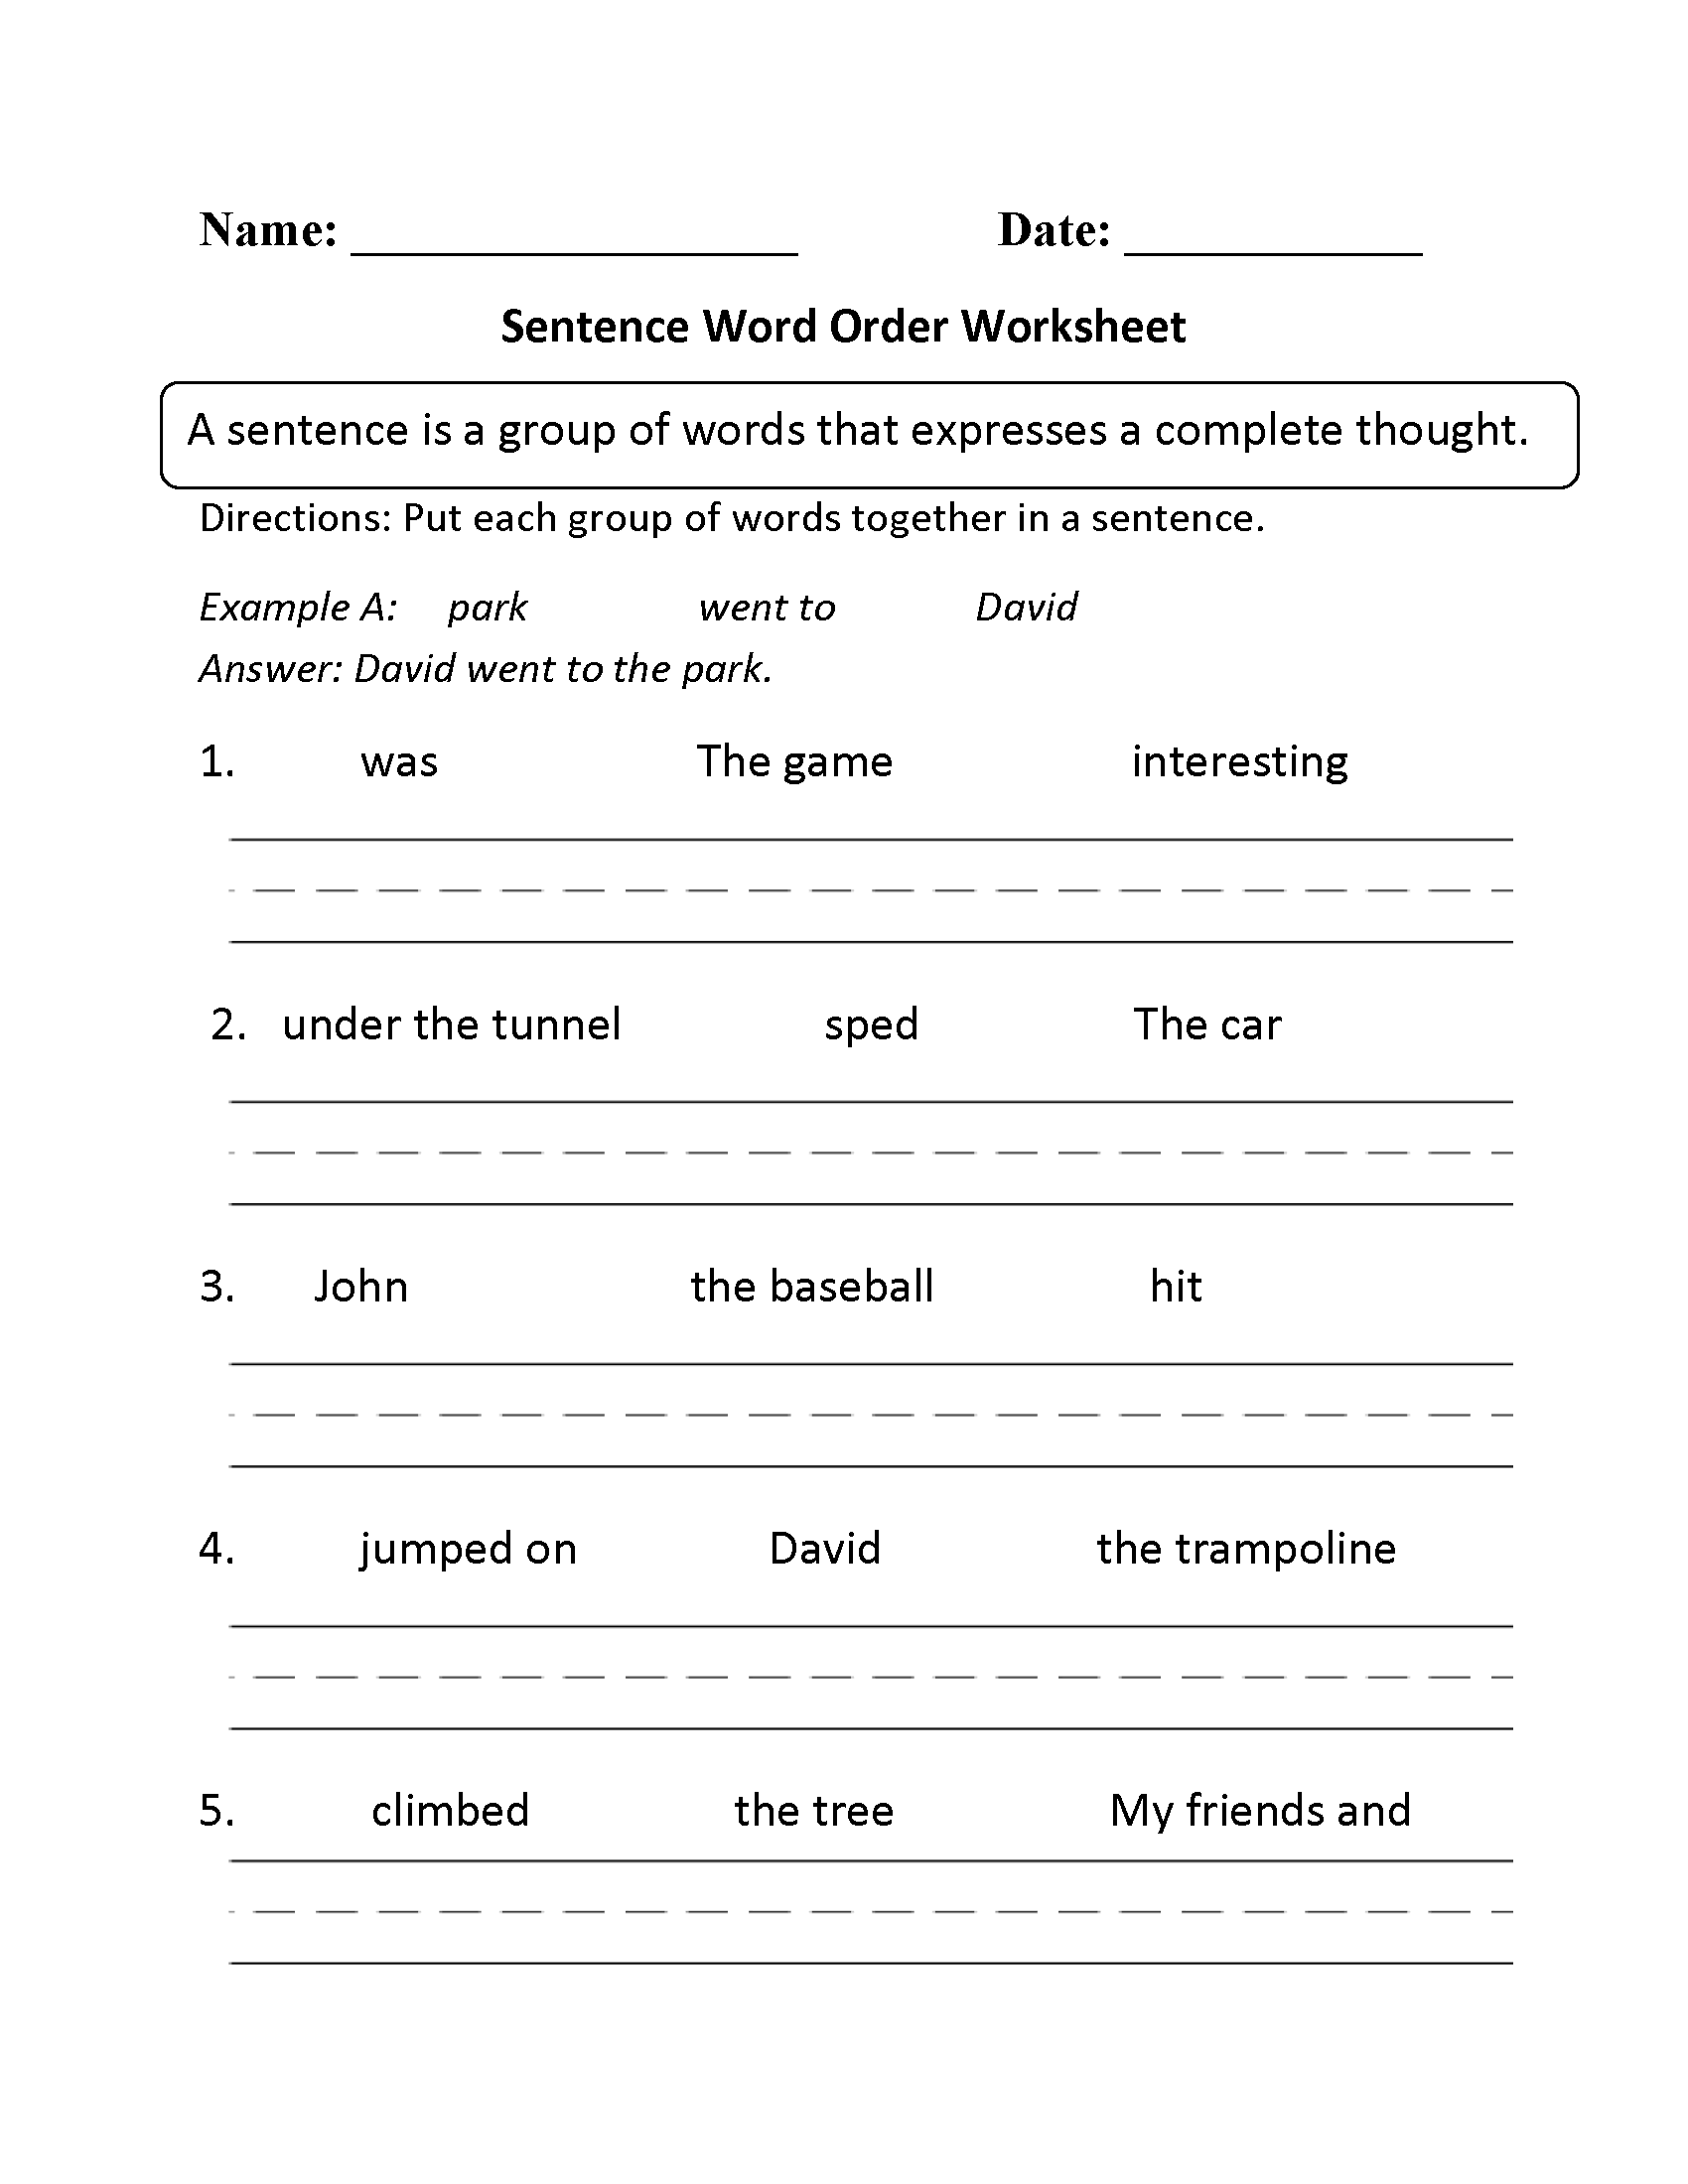 Worksheets Sentence Diagramming Worksheets grammar worksheets sentence structure building worksheets